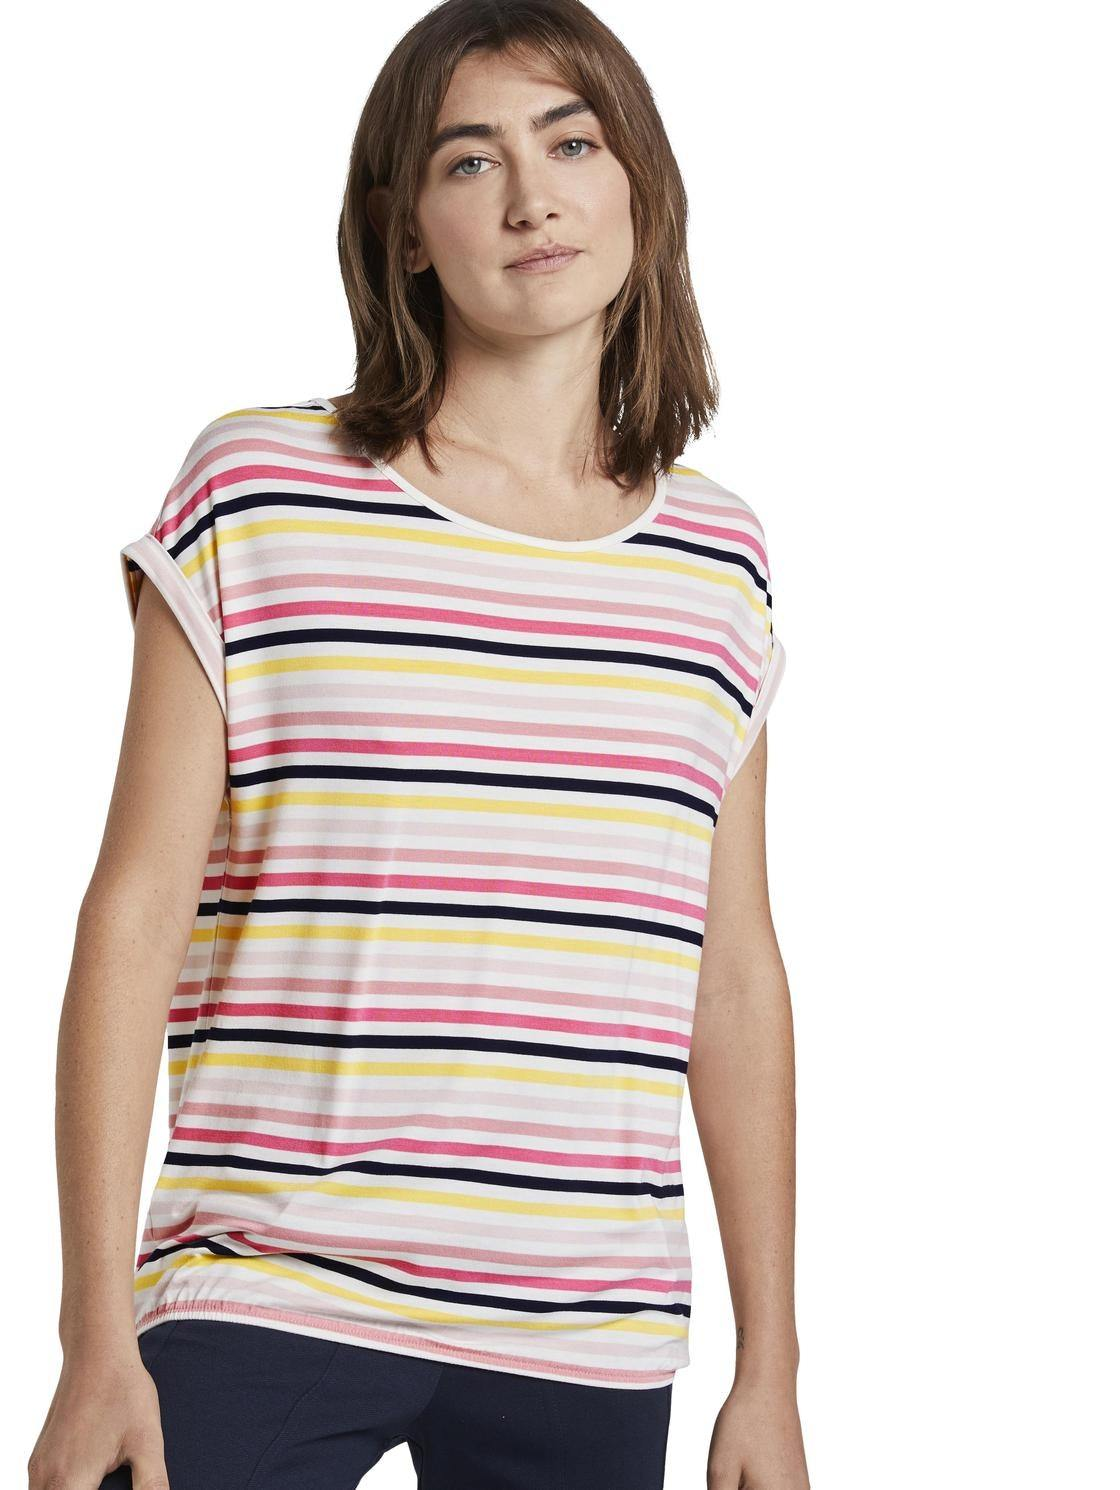 Tom Tailor women t-shirt 1017095